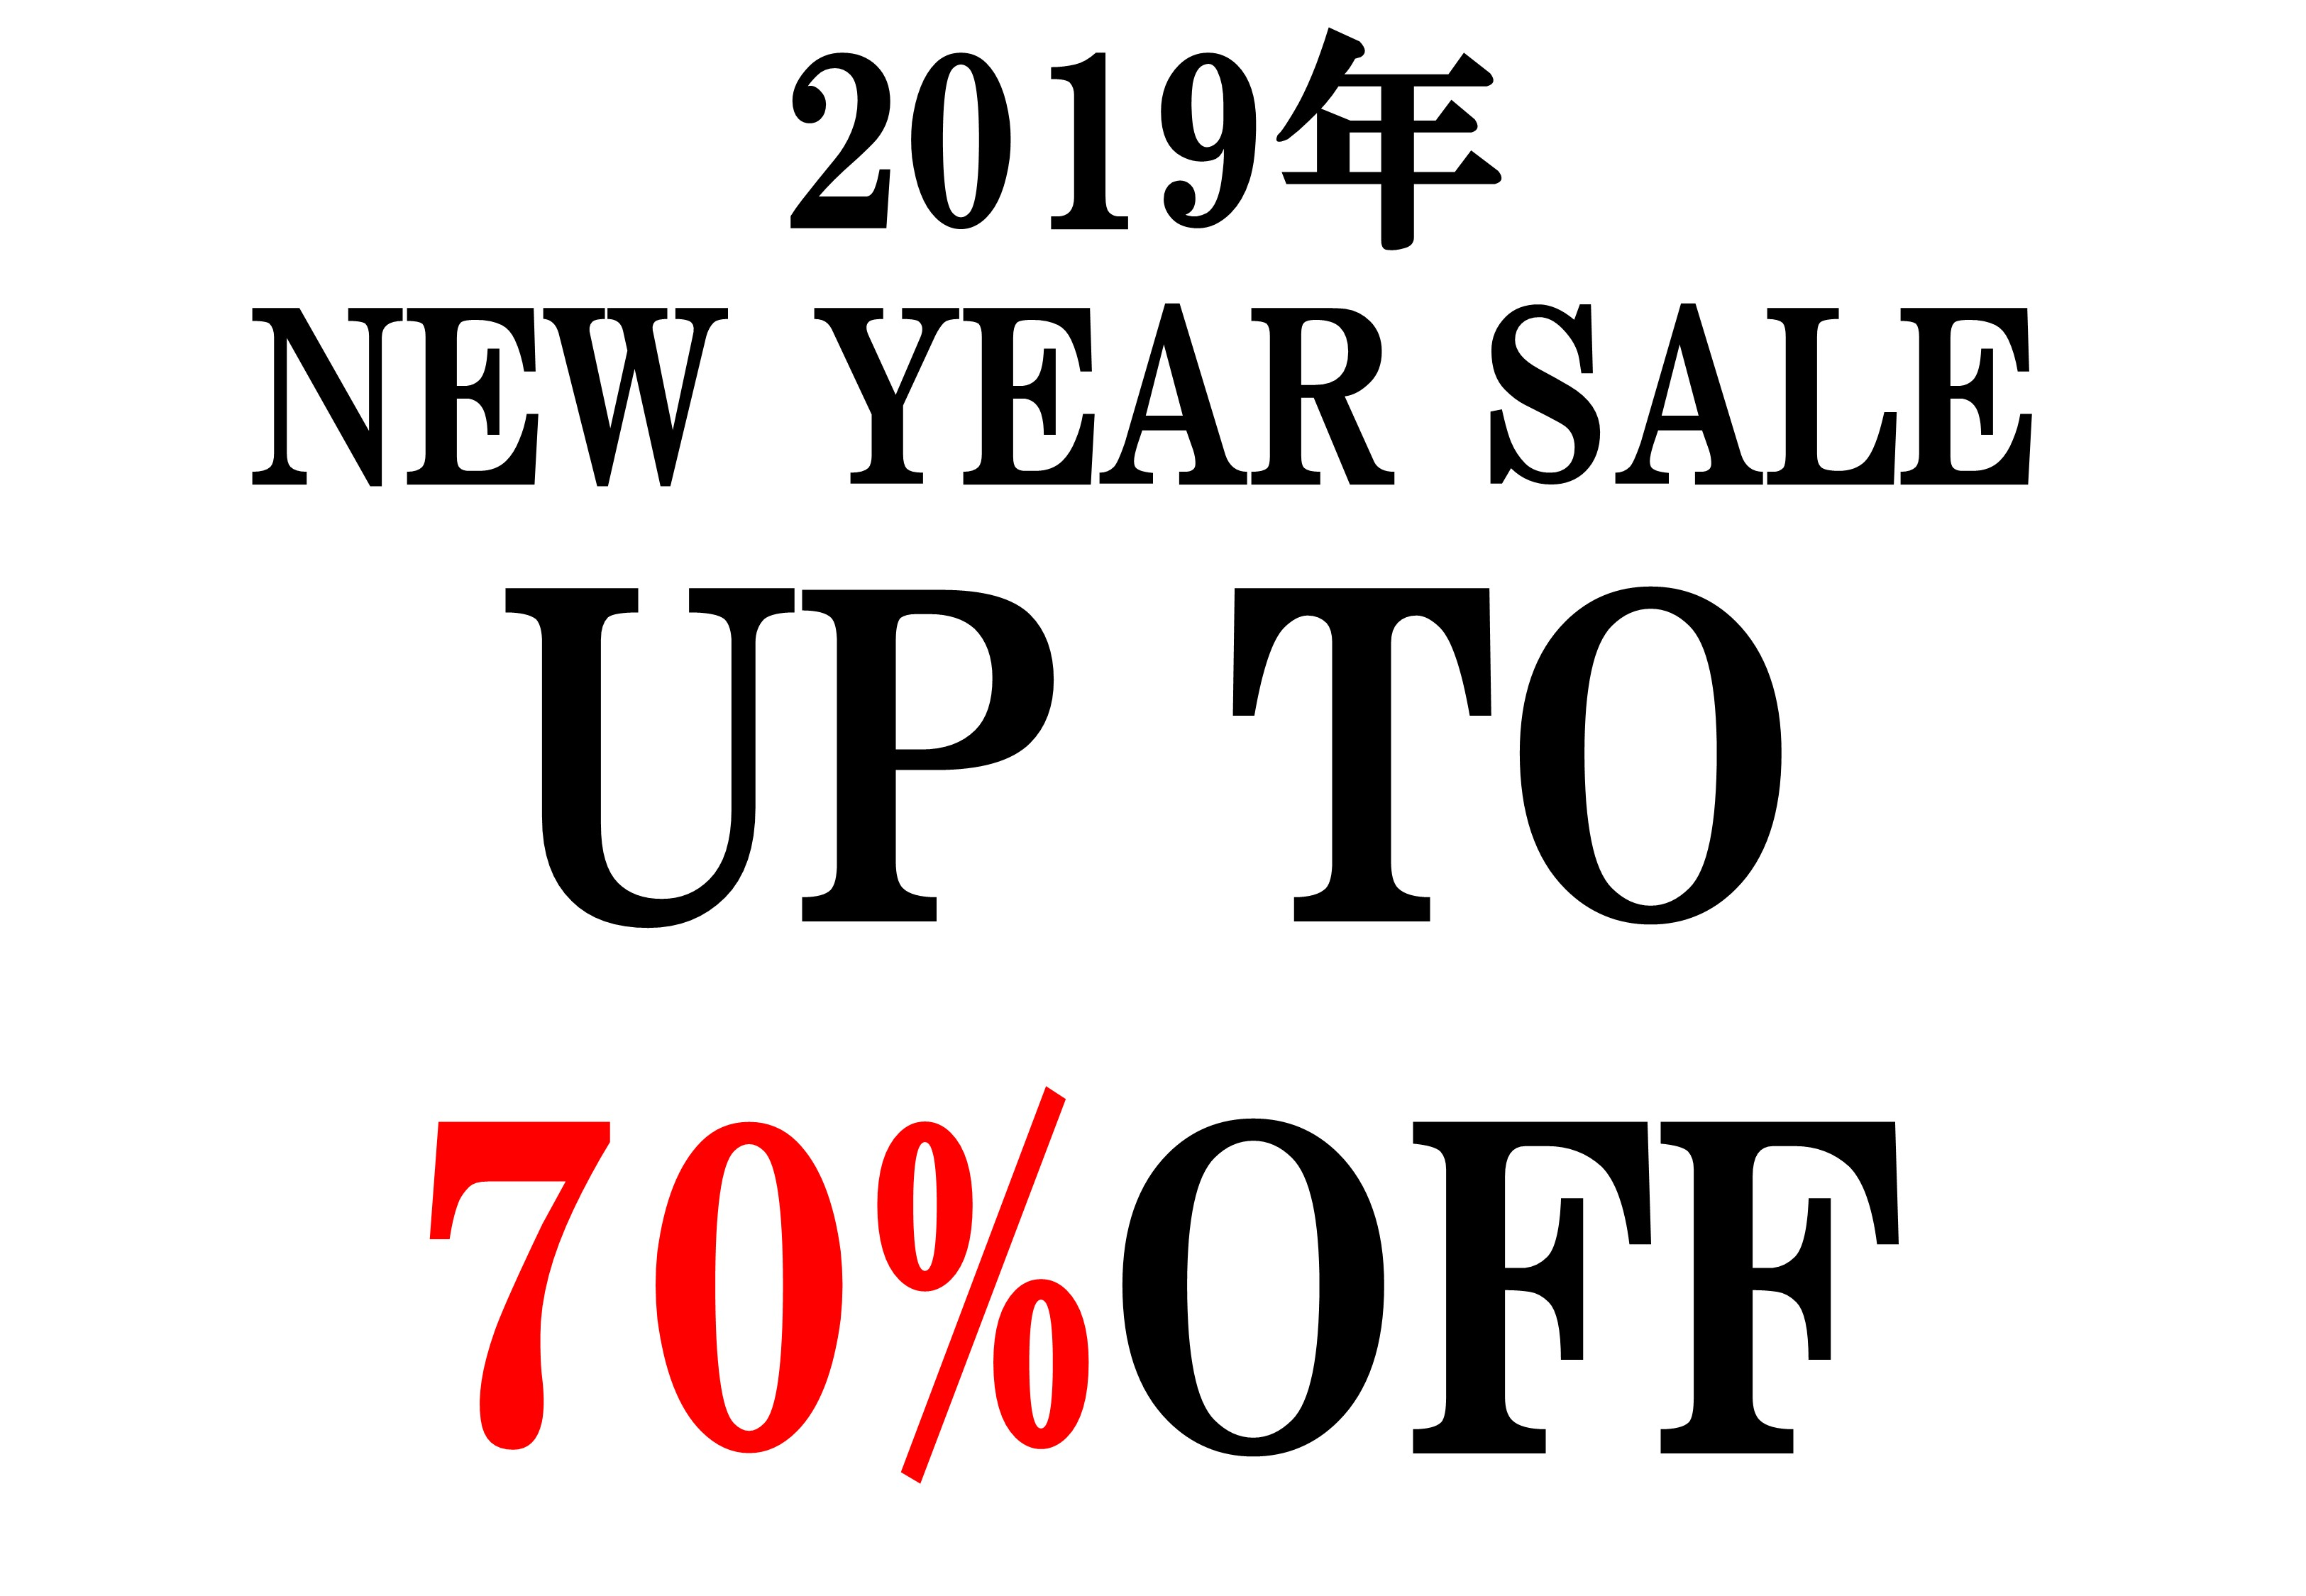 NEW YEAR SALE 2019-2